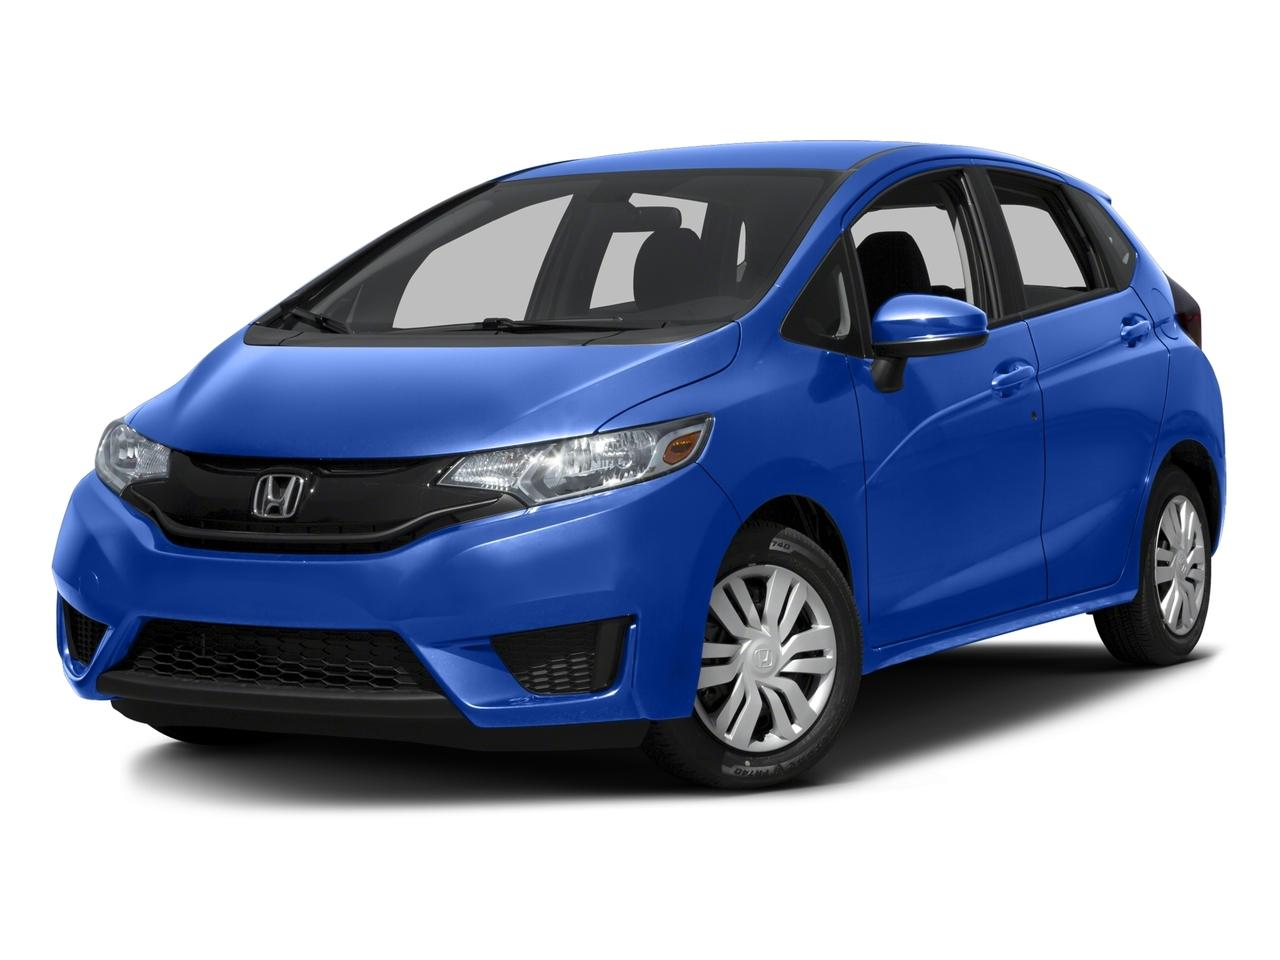 2016 Honda Fit Vehicle Photo in Concord, NC 28027